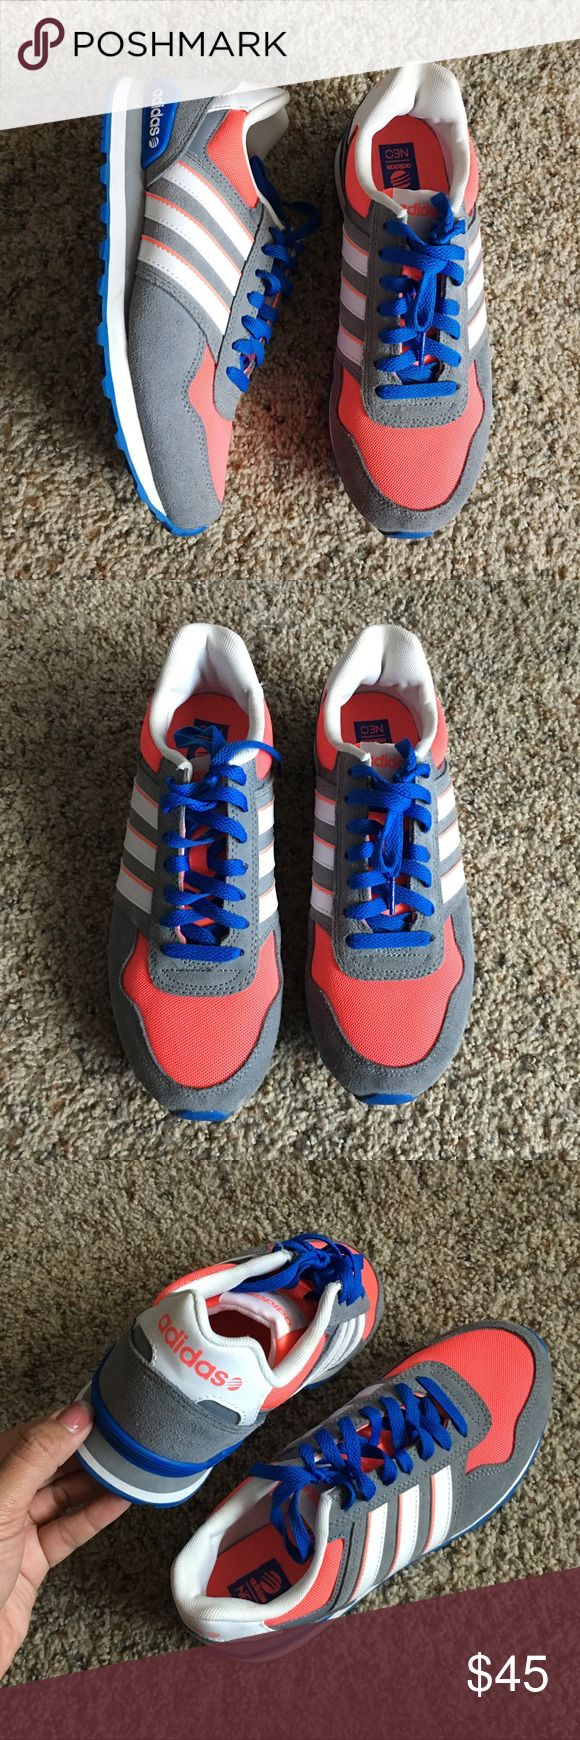 Adidas Neo Ortholite 10k Running Shoes Lightly used in very good condition adidas running shoes, comfort and style combined! Super cute and comfy! Perfect colors for the season. Women's size 7 and true to size Adidas Shoes Athletic Shoes